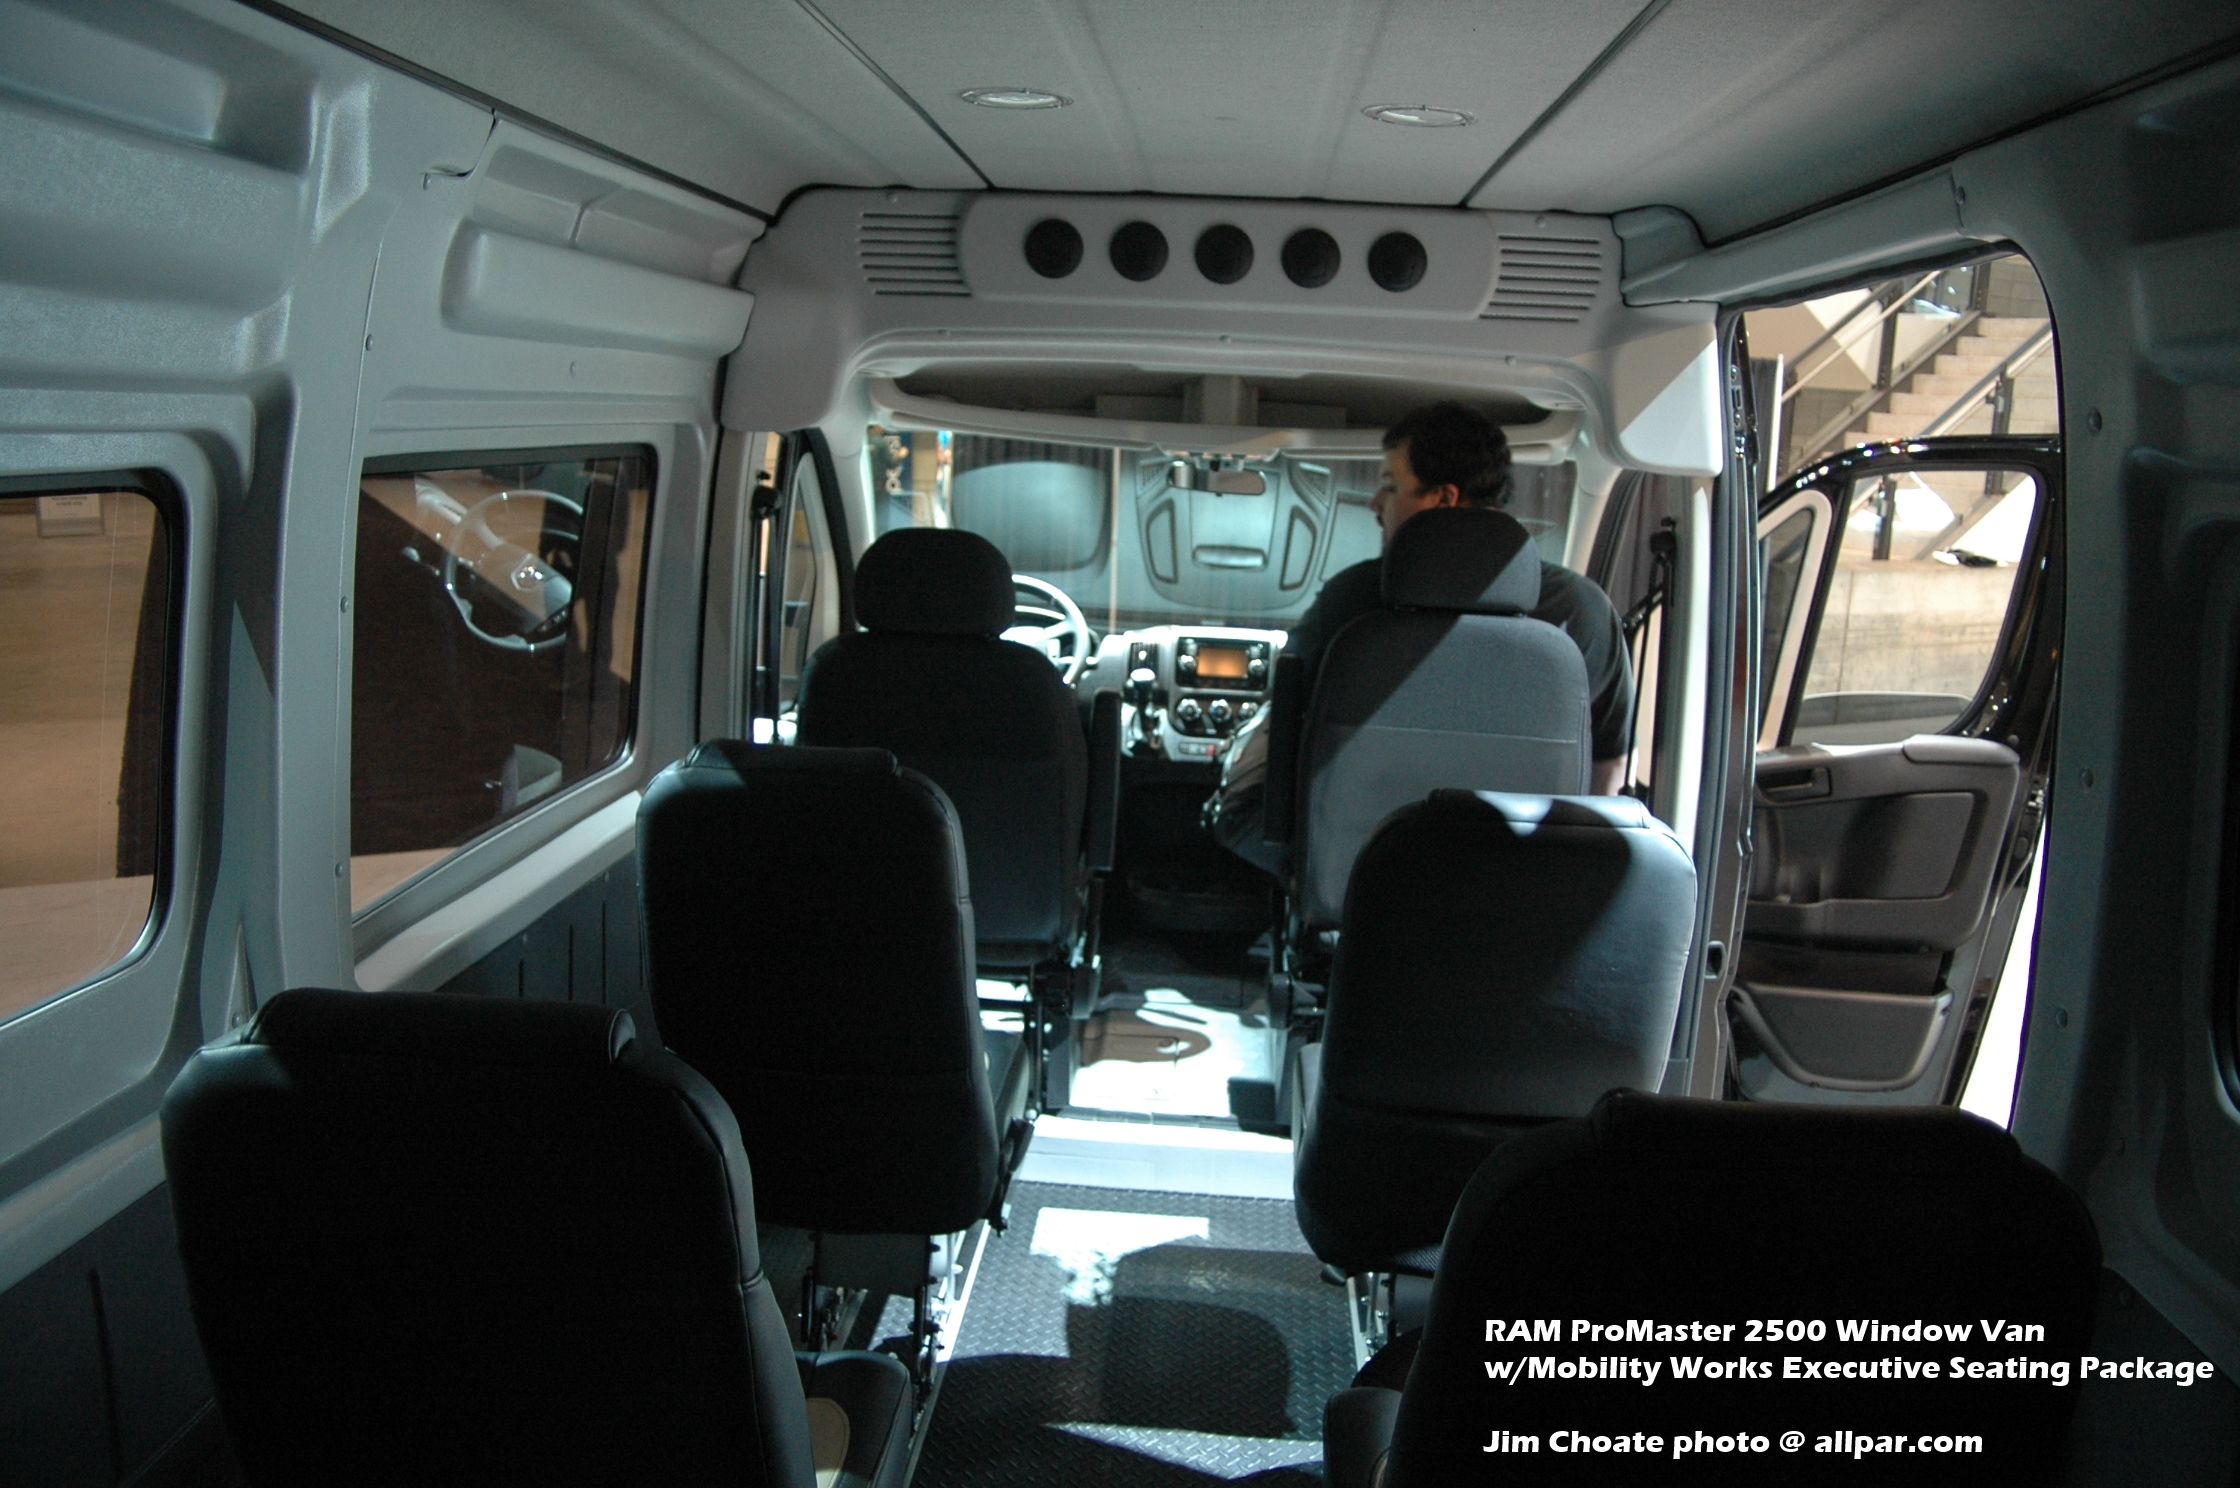 2014 Ram Promaster Window Van #8